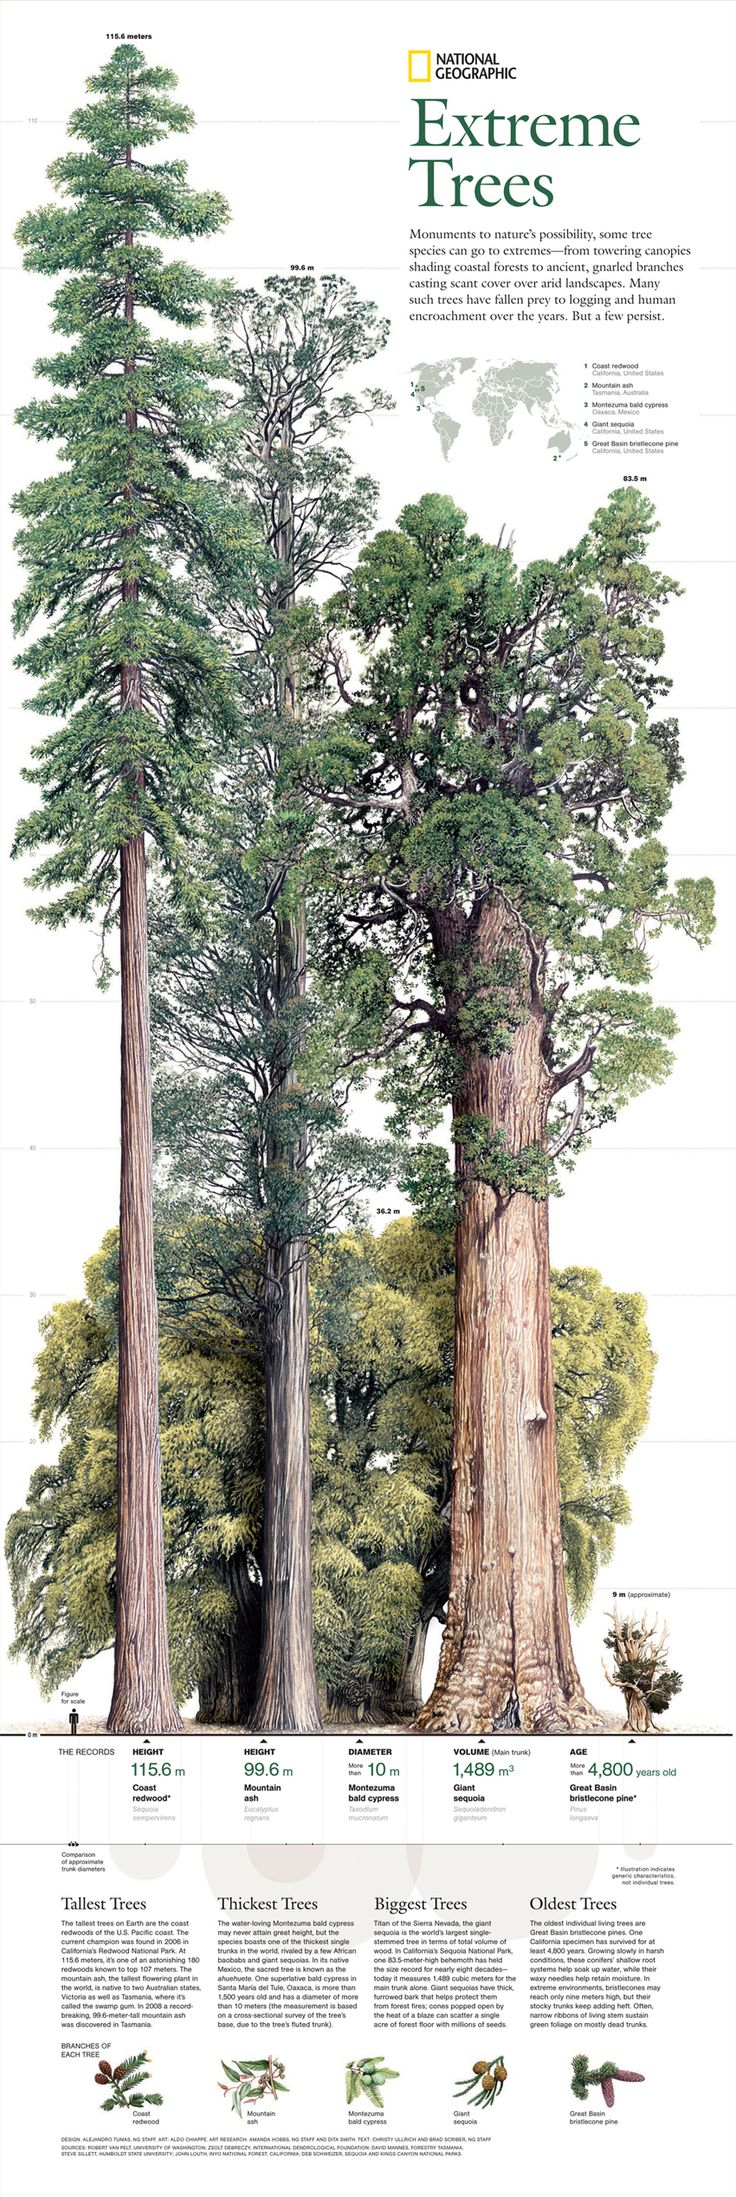 EXTREME TREES { COAST REDWOOD: tallest tree, 115/6 meters // MONTEZUMA BALD CYPRESS: thickest tree, water loving // GIANT SEQUOIA: biggest tree, in terms of volume of wood // GREAT BASIN: oldest tree, californias species surveyed 4,800 years! }